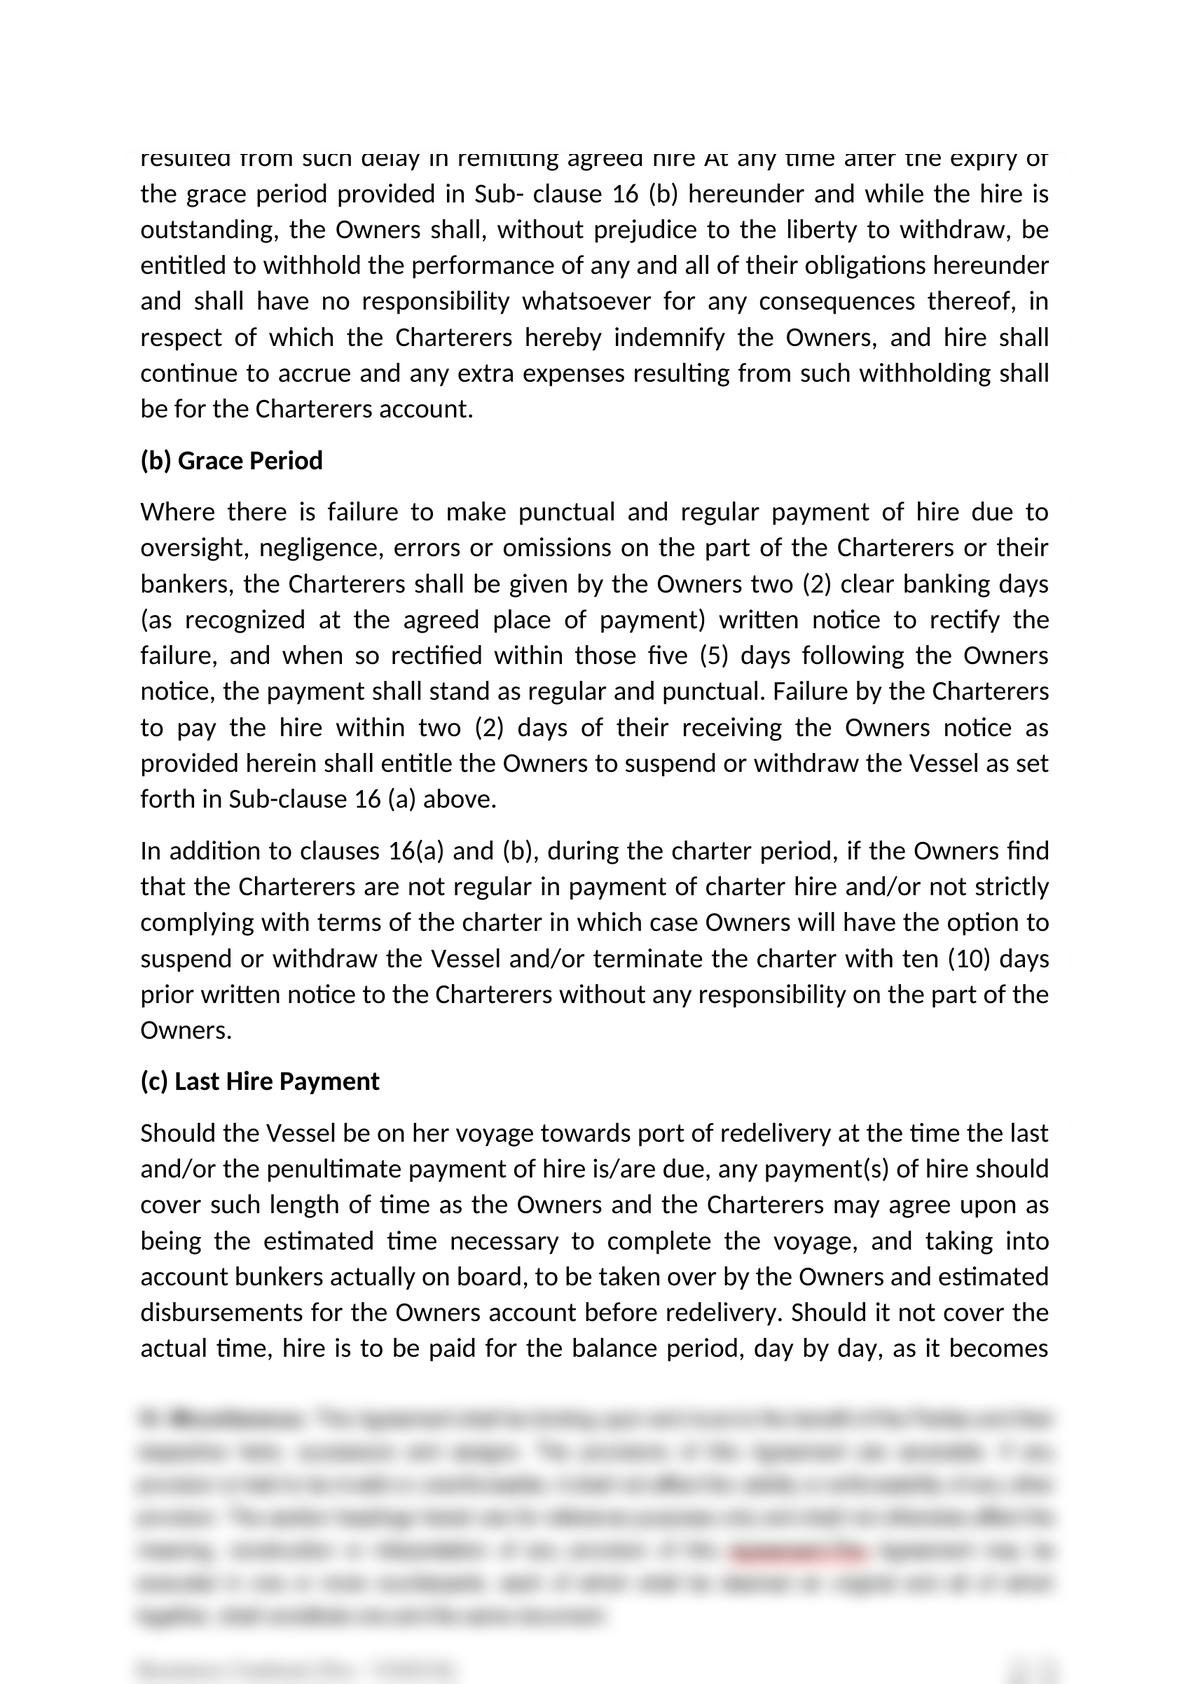 charter party agreement in cameroon-9